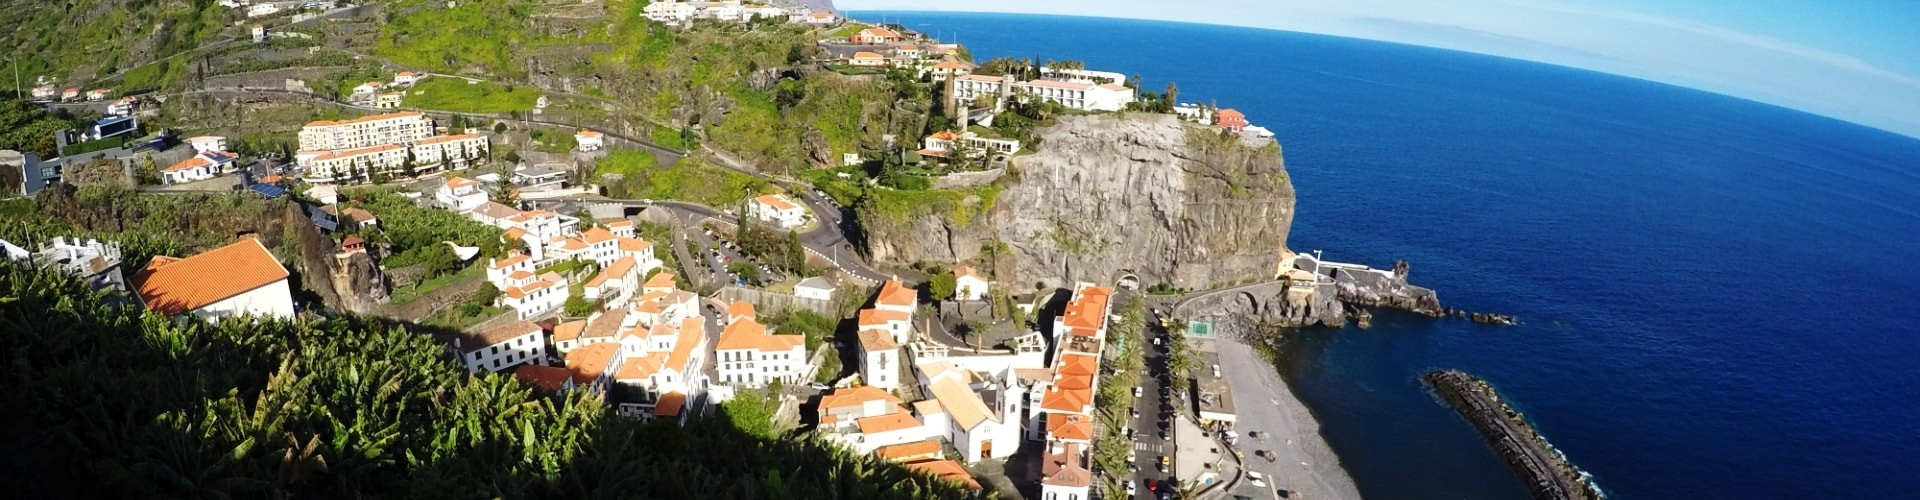 Ponta do Sol Municipality in Madeira Island